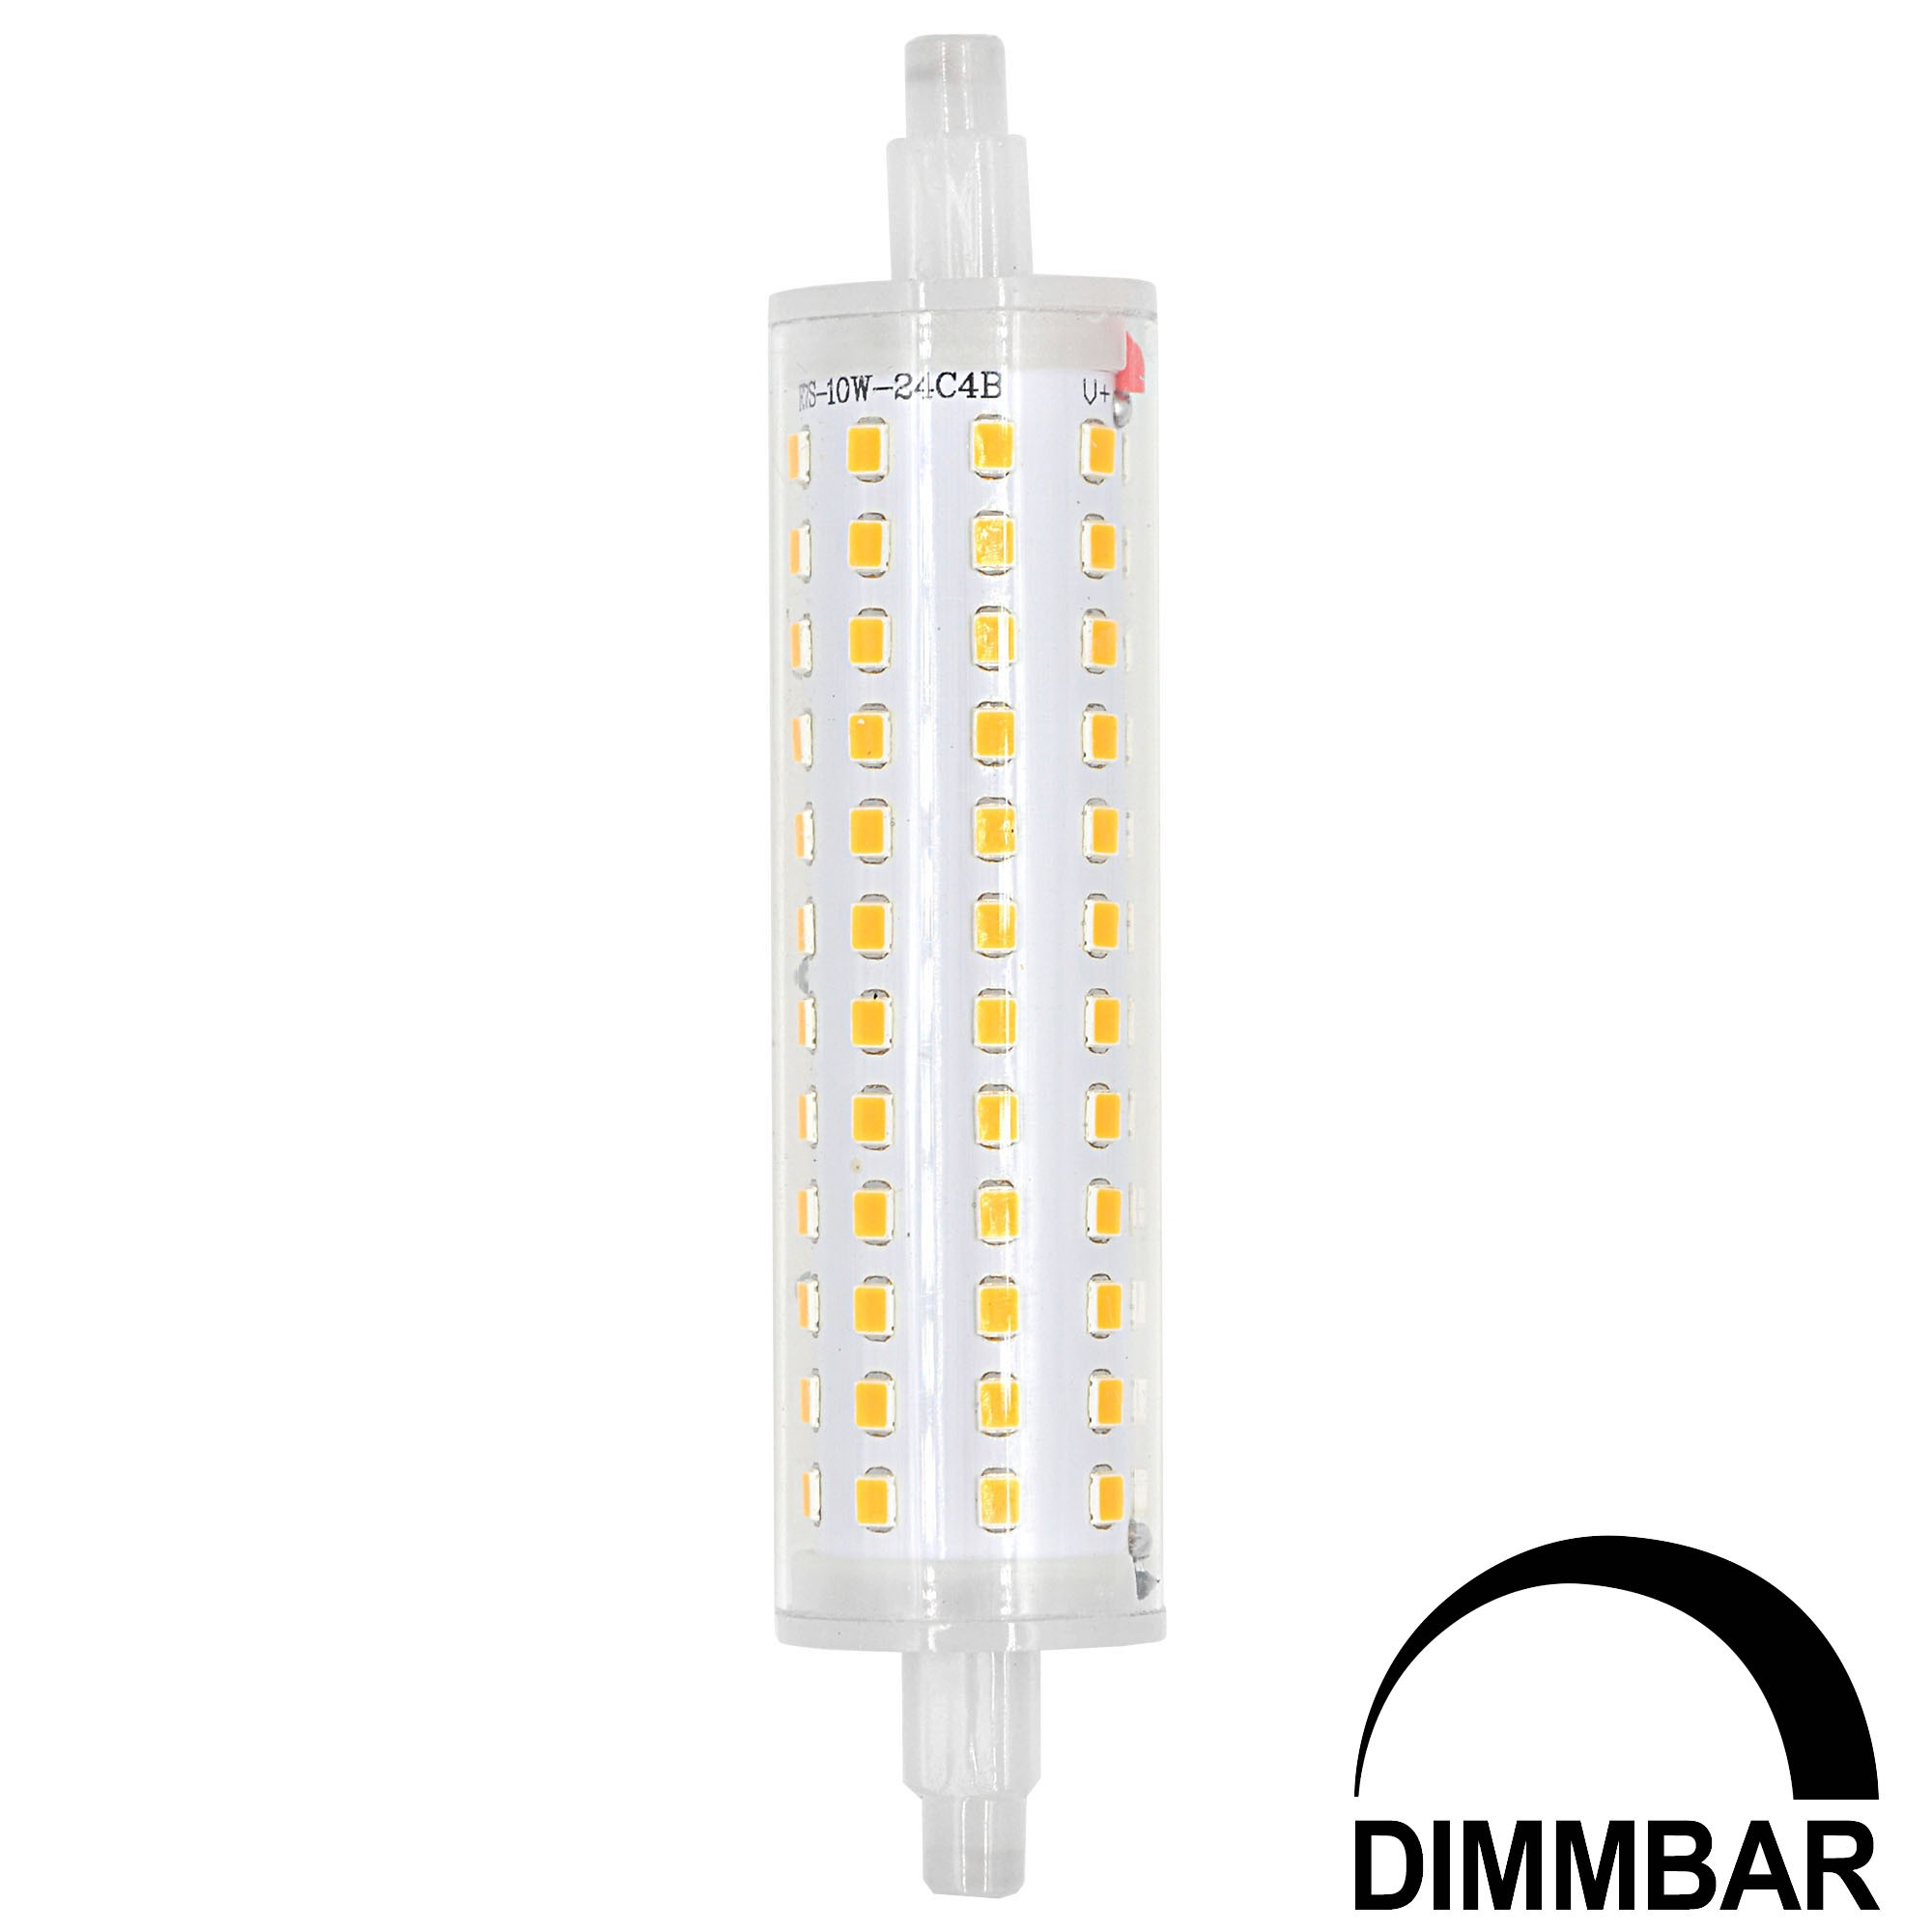 Led R7s Dimmbar Mengsled – Mengs® R7s 10w Led Dimmable Flood Light 96x 2835 Smd Led Bulb Lamp Ac 220-240v In Warm White Energy-saving Light